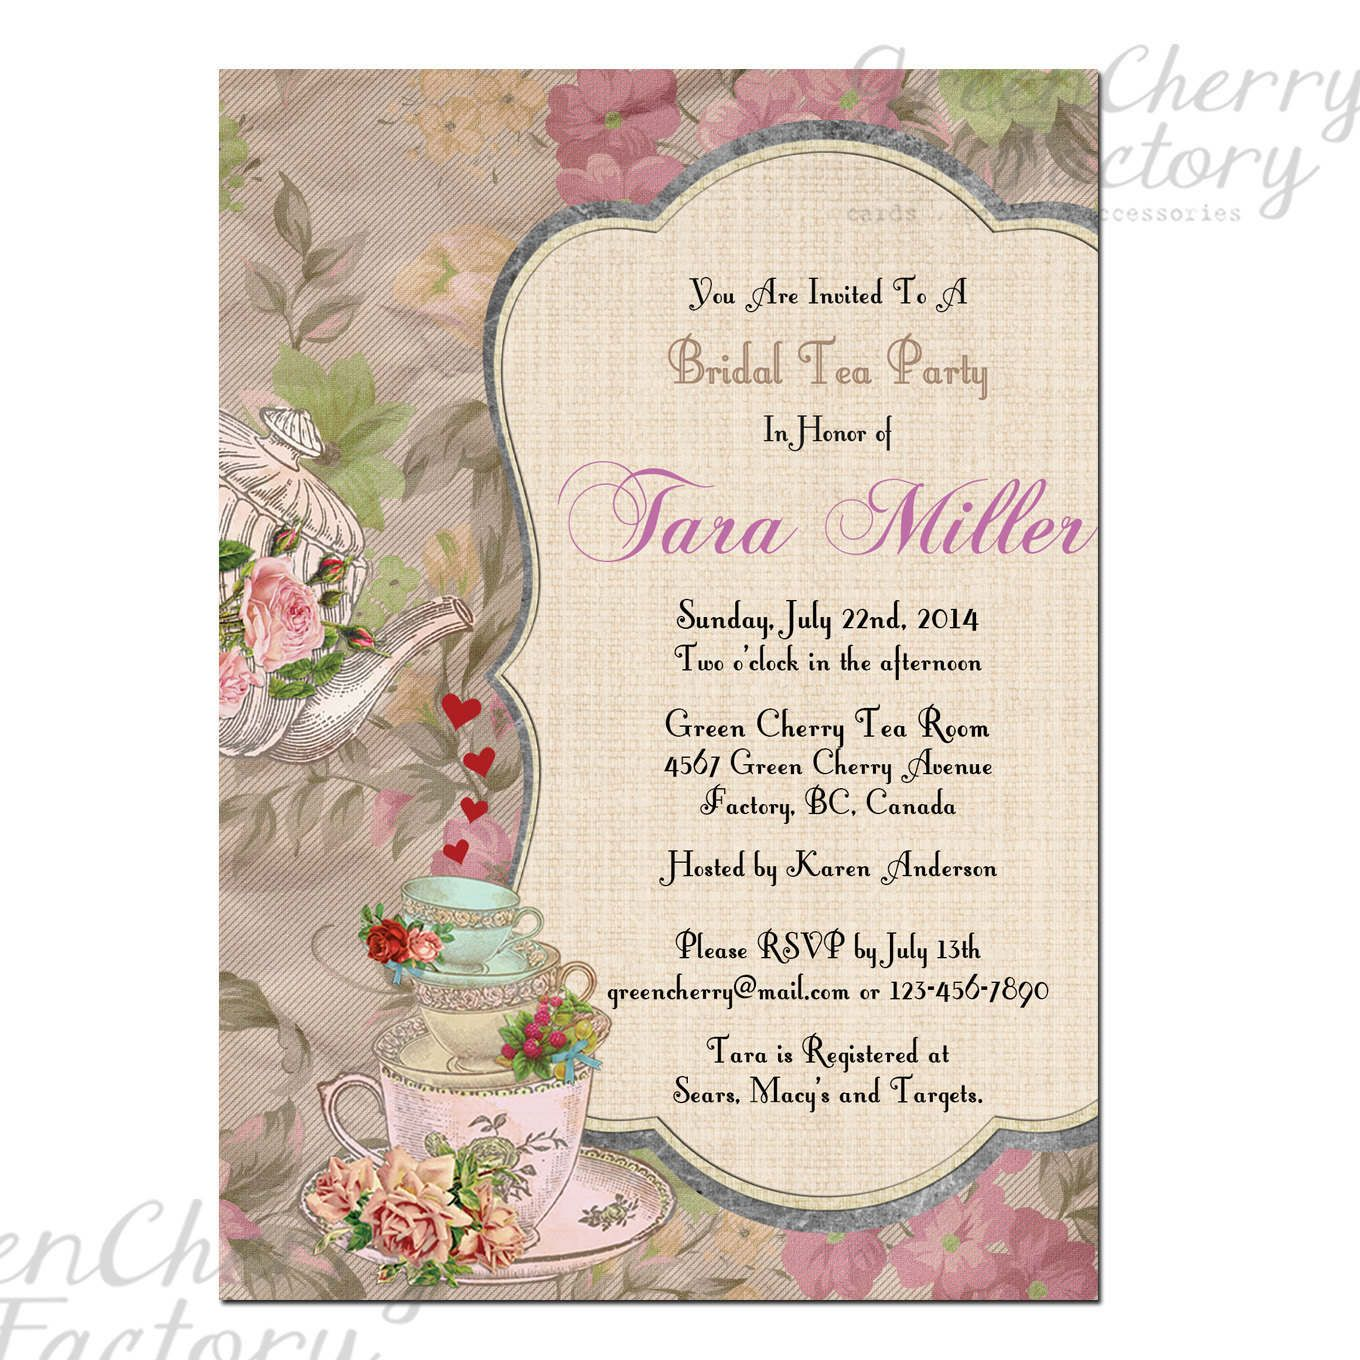 Tea Party Invitation Template | High Tea Party Invitations free ...